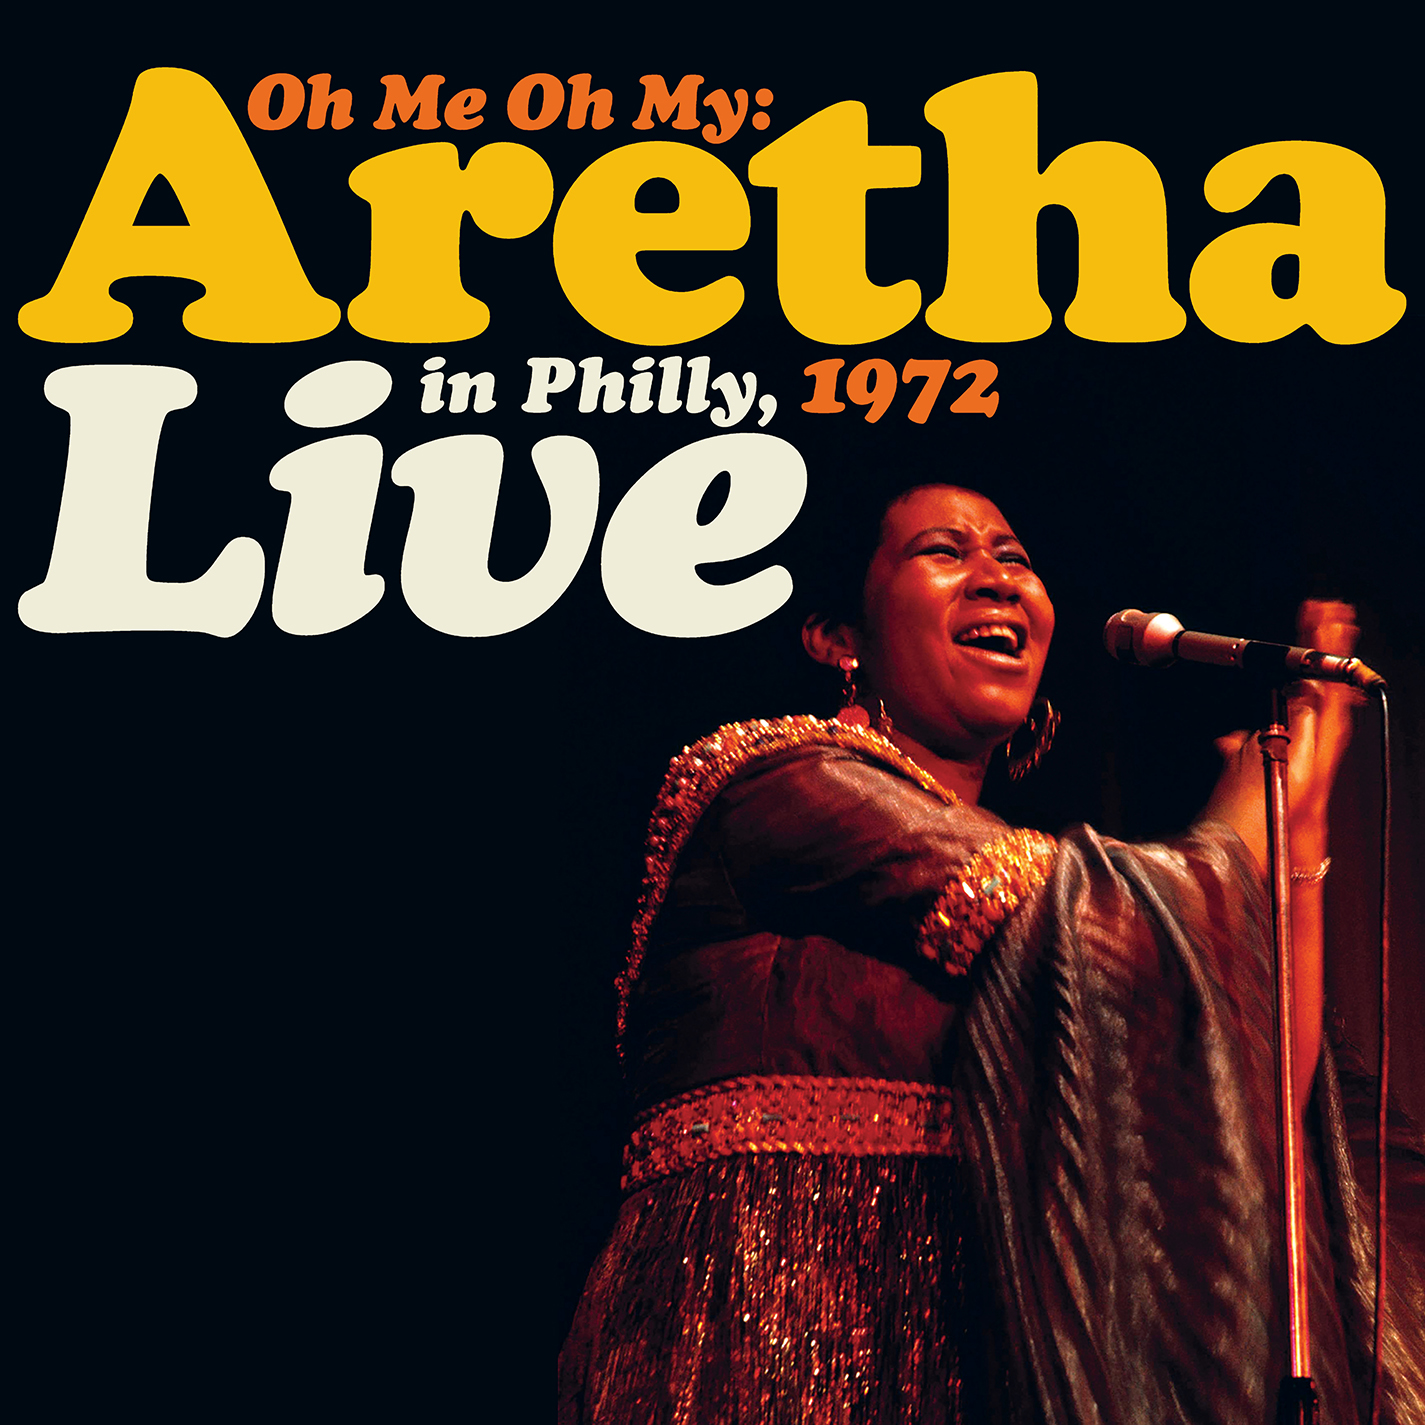 Aretha Franklin - Oh Me Oh My: Aretha Live in Philly 1972 [RSD Drops 2021]